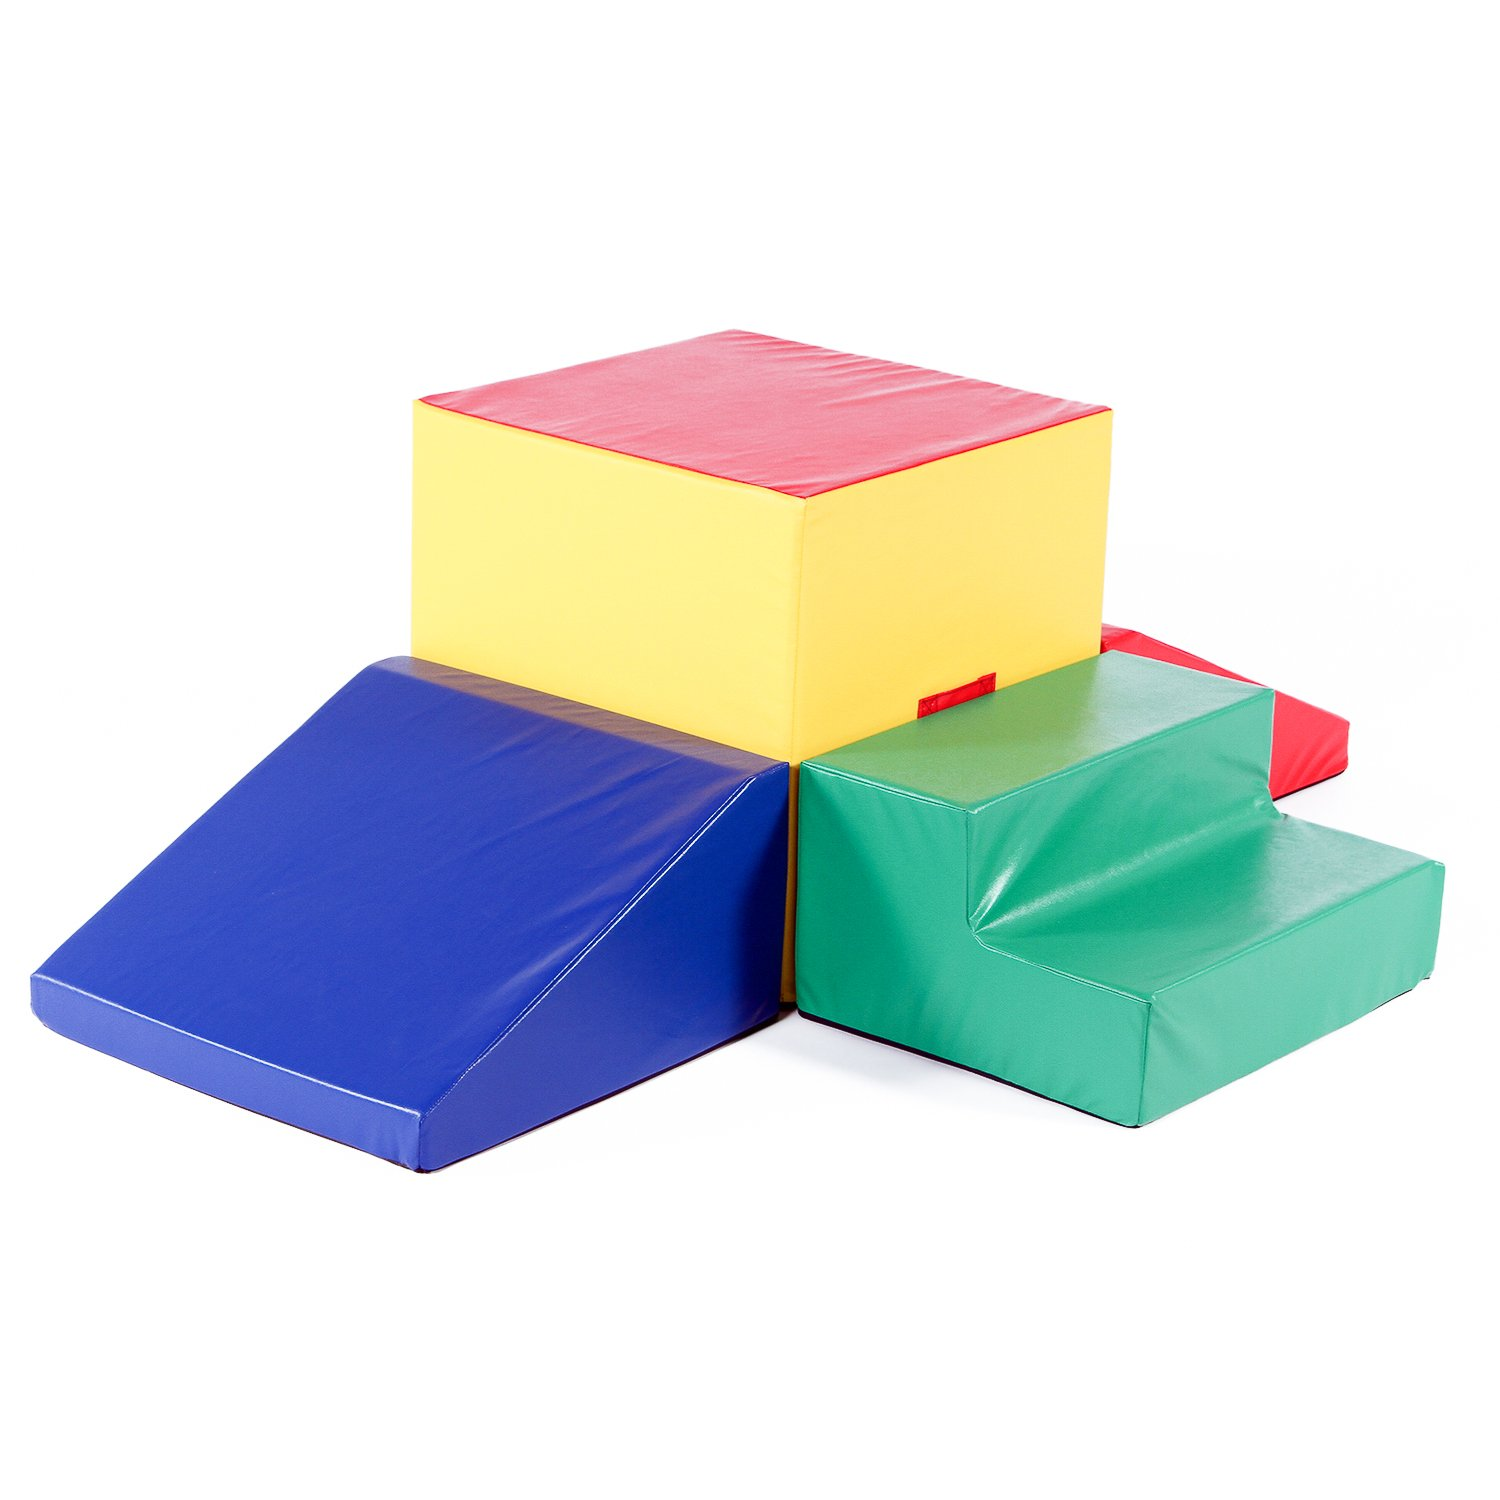 Foam blocks with their own hands at home 86